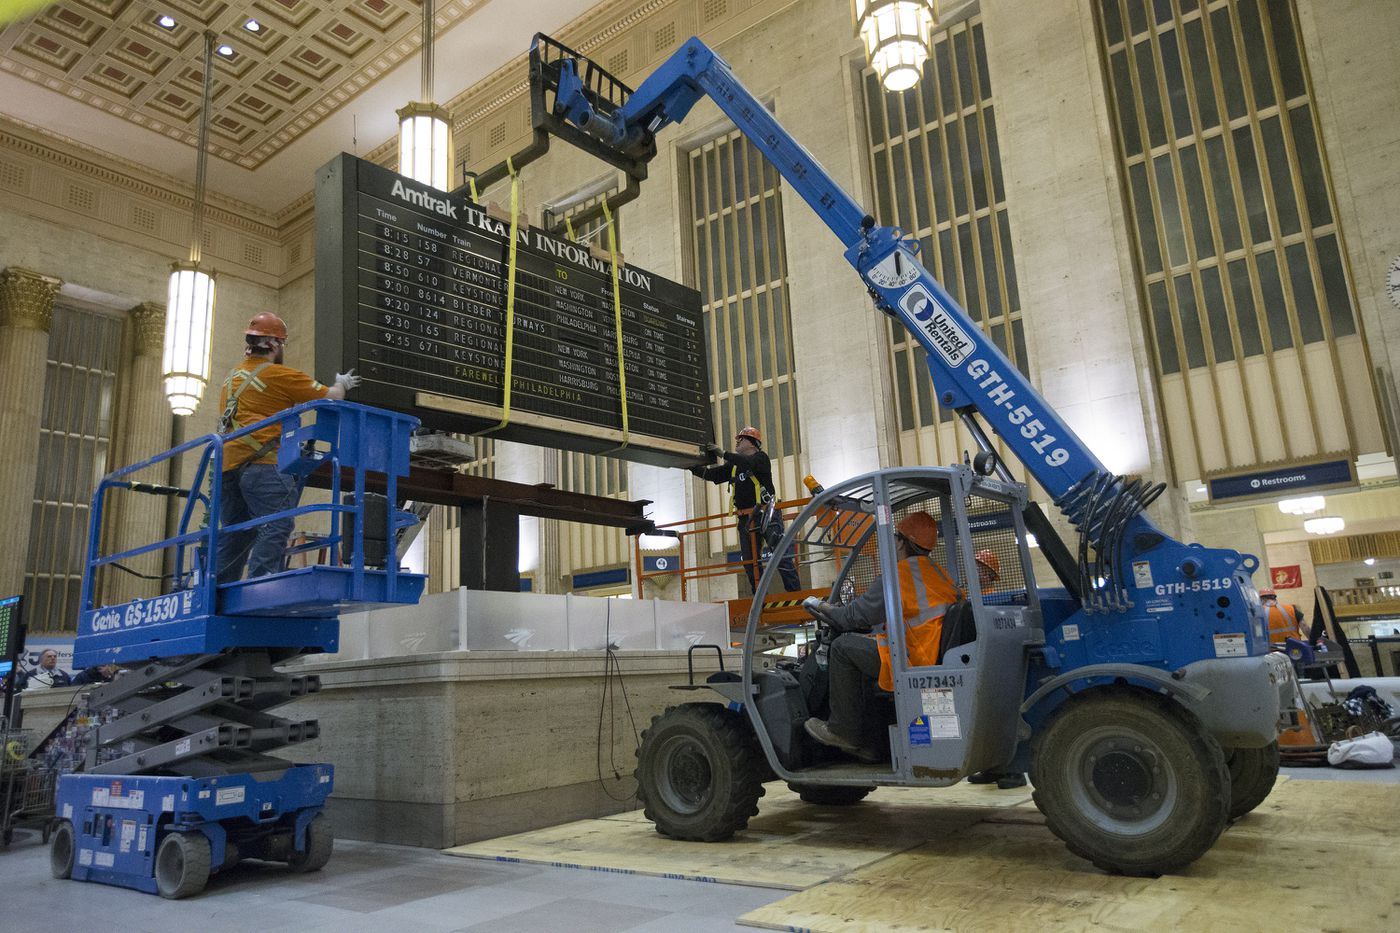 Philadelphia says goodbye to its iconic 30th Street Station